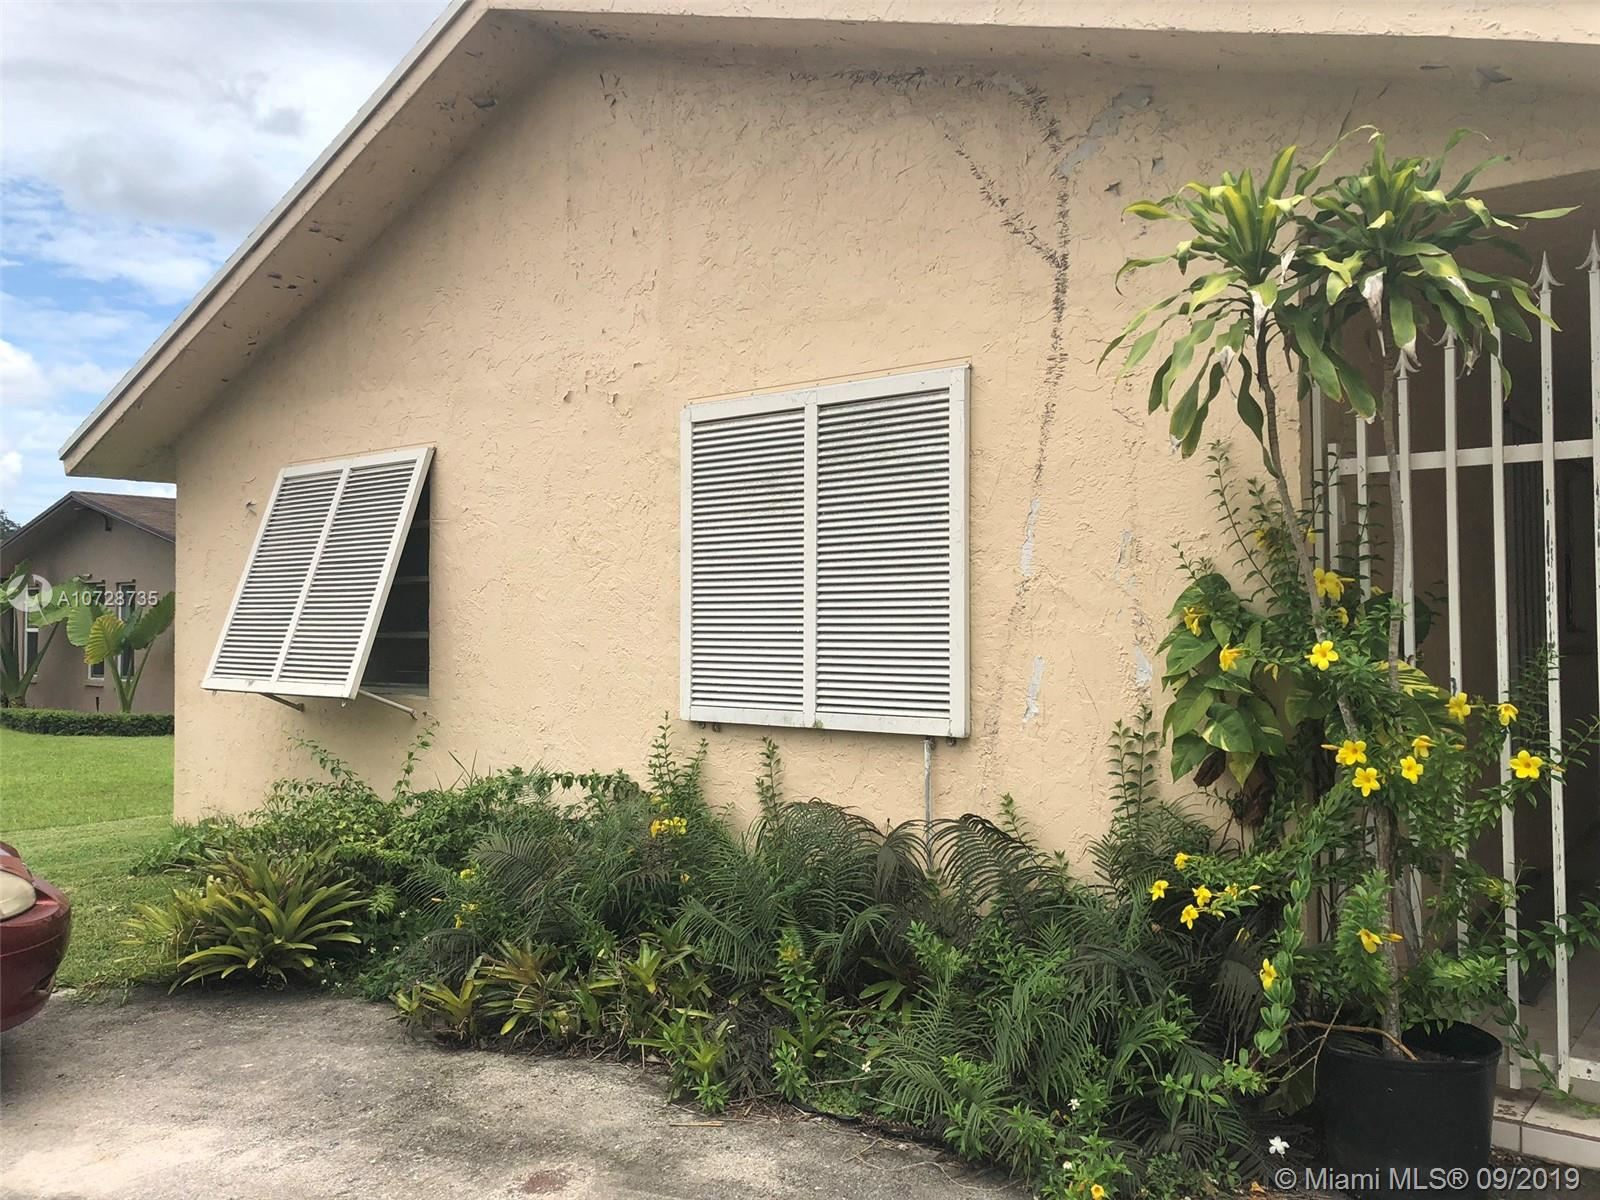 Photo 2 of Listing MLS a10728735 in 14760 SW 77th St Miami FL 33193